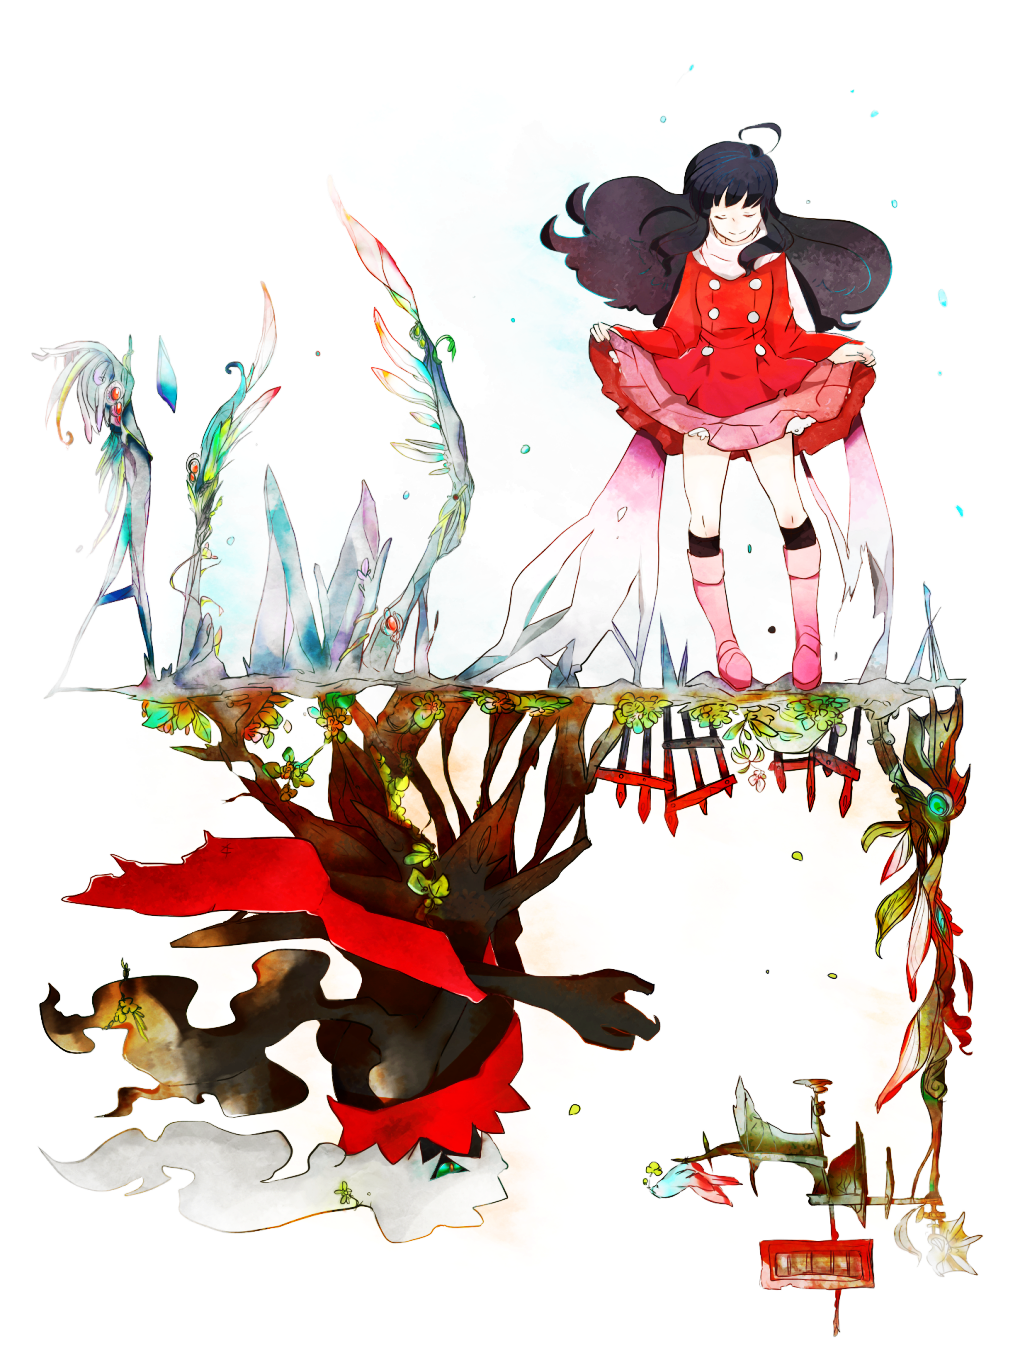 1girl ahoge black_hair black_legwear boots buttons closed_eyes closed_mouth coat commentary_request darkrai dawn_(pokemon) floating_hair gen_4_pokemon head_down highres long_hair long_sleeves mythical_pokemon pink_footwear pokemon pokemon_(creature) pokemon_(game) pokemon_dppt pokemon_platinum red_coat siroirohituji smile socks standing